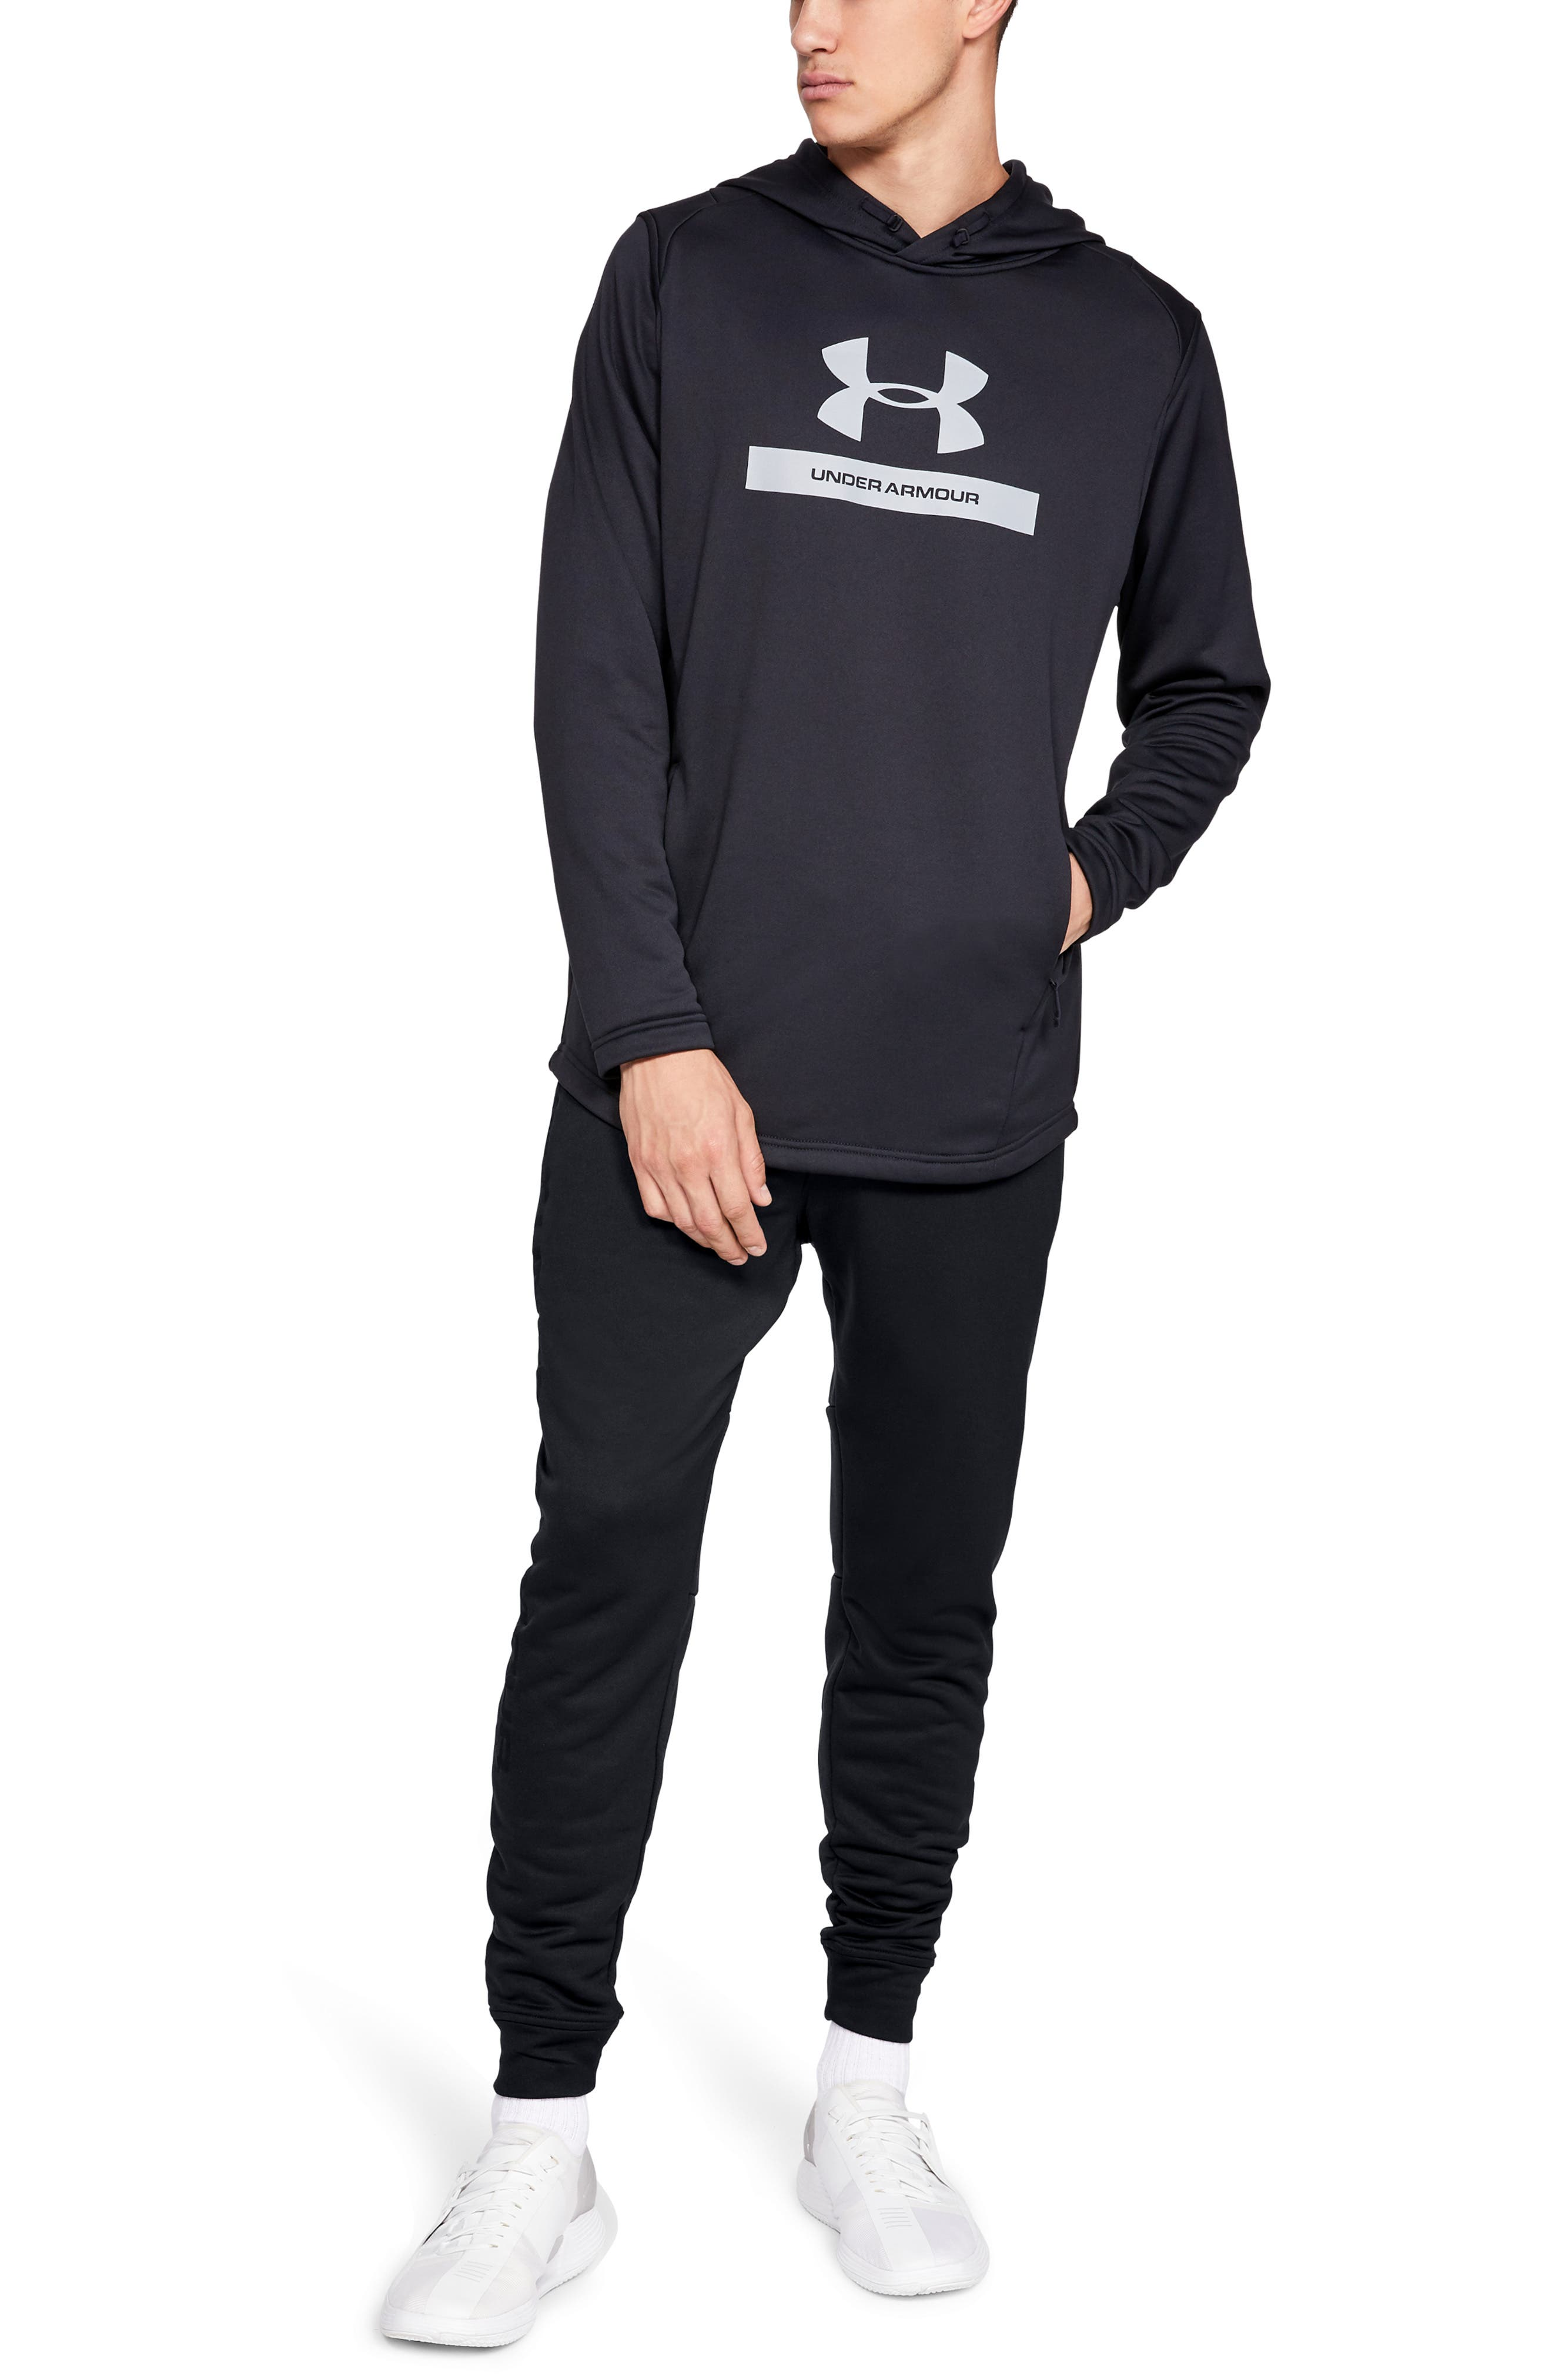 MK1 French Terry Joggers,                             Alternate thumbnail 3, color,                             BLACK/ BLACK